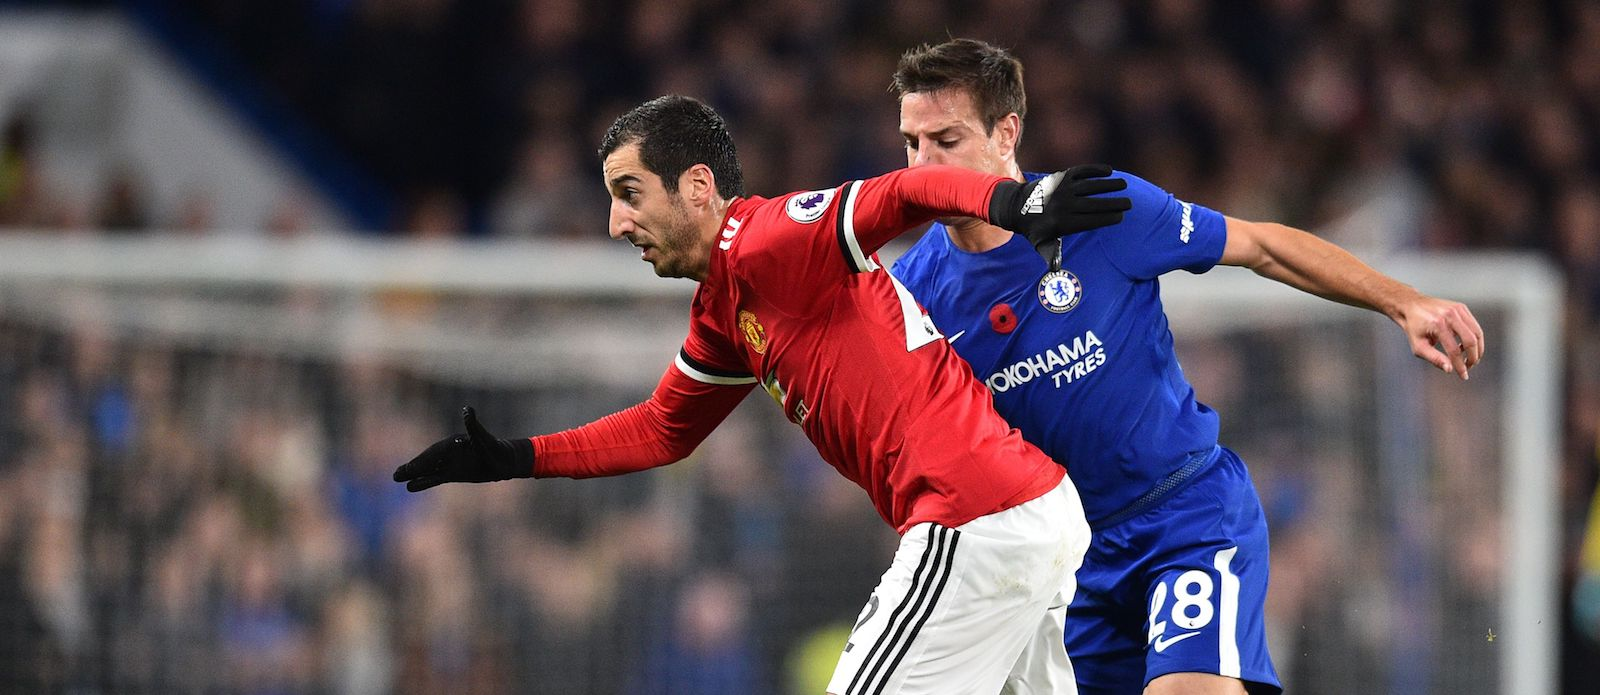 Henrikh Mkhitaryan: I stopped enjoying football at Manchester United